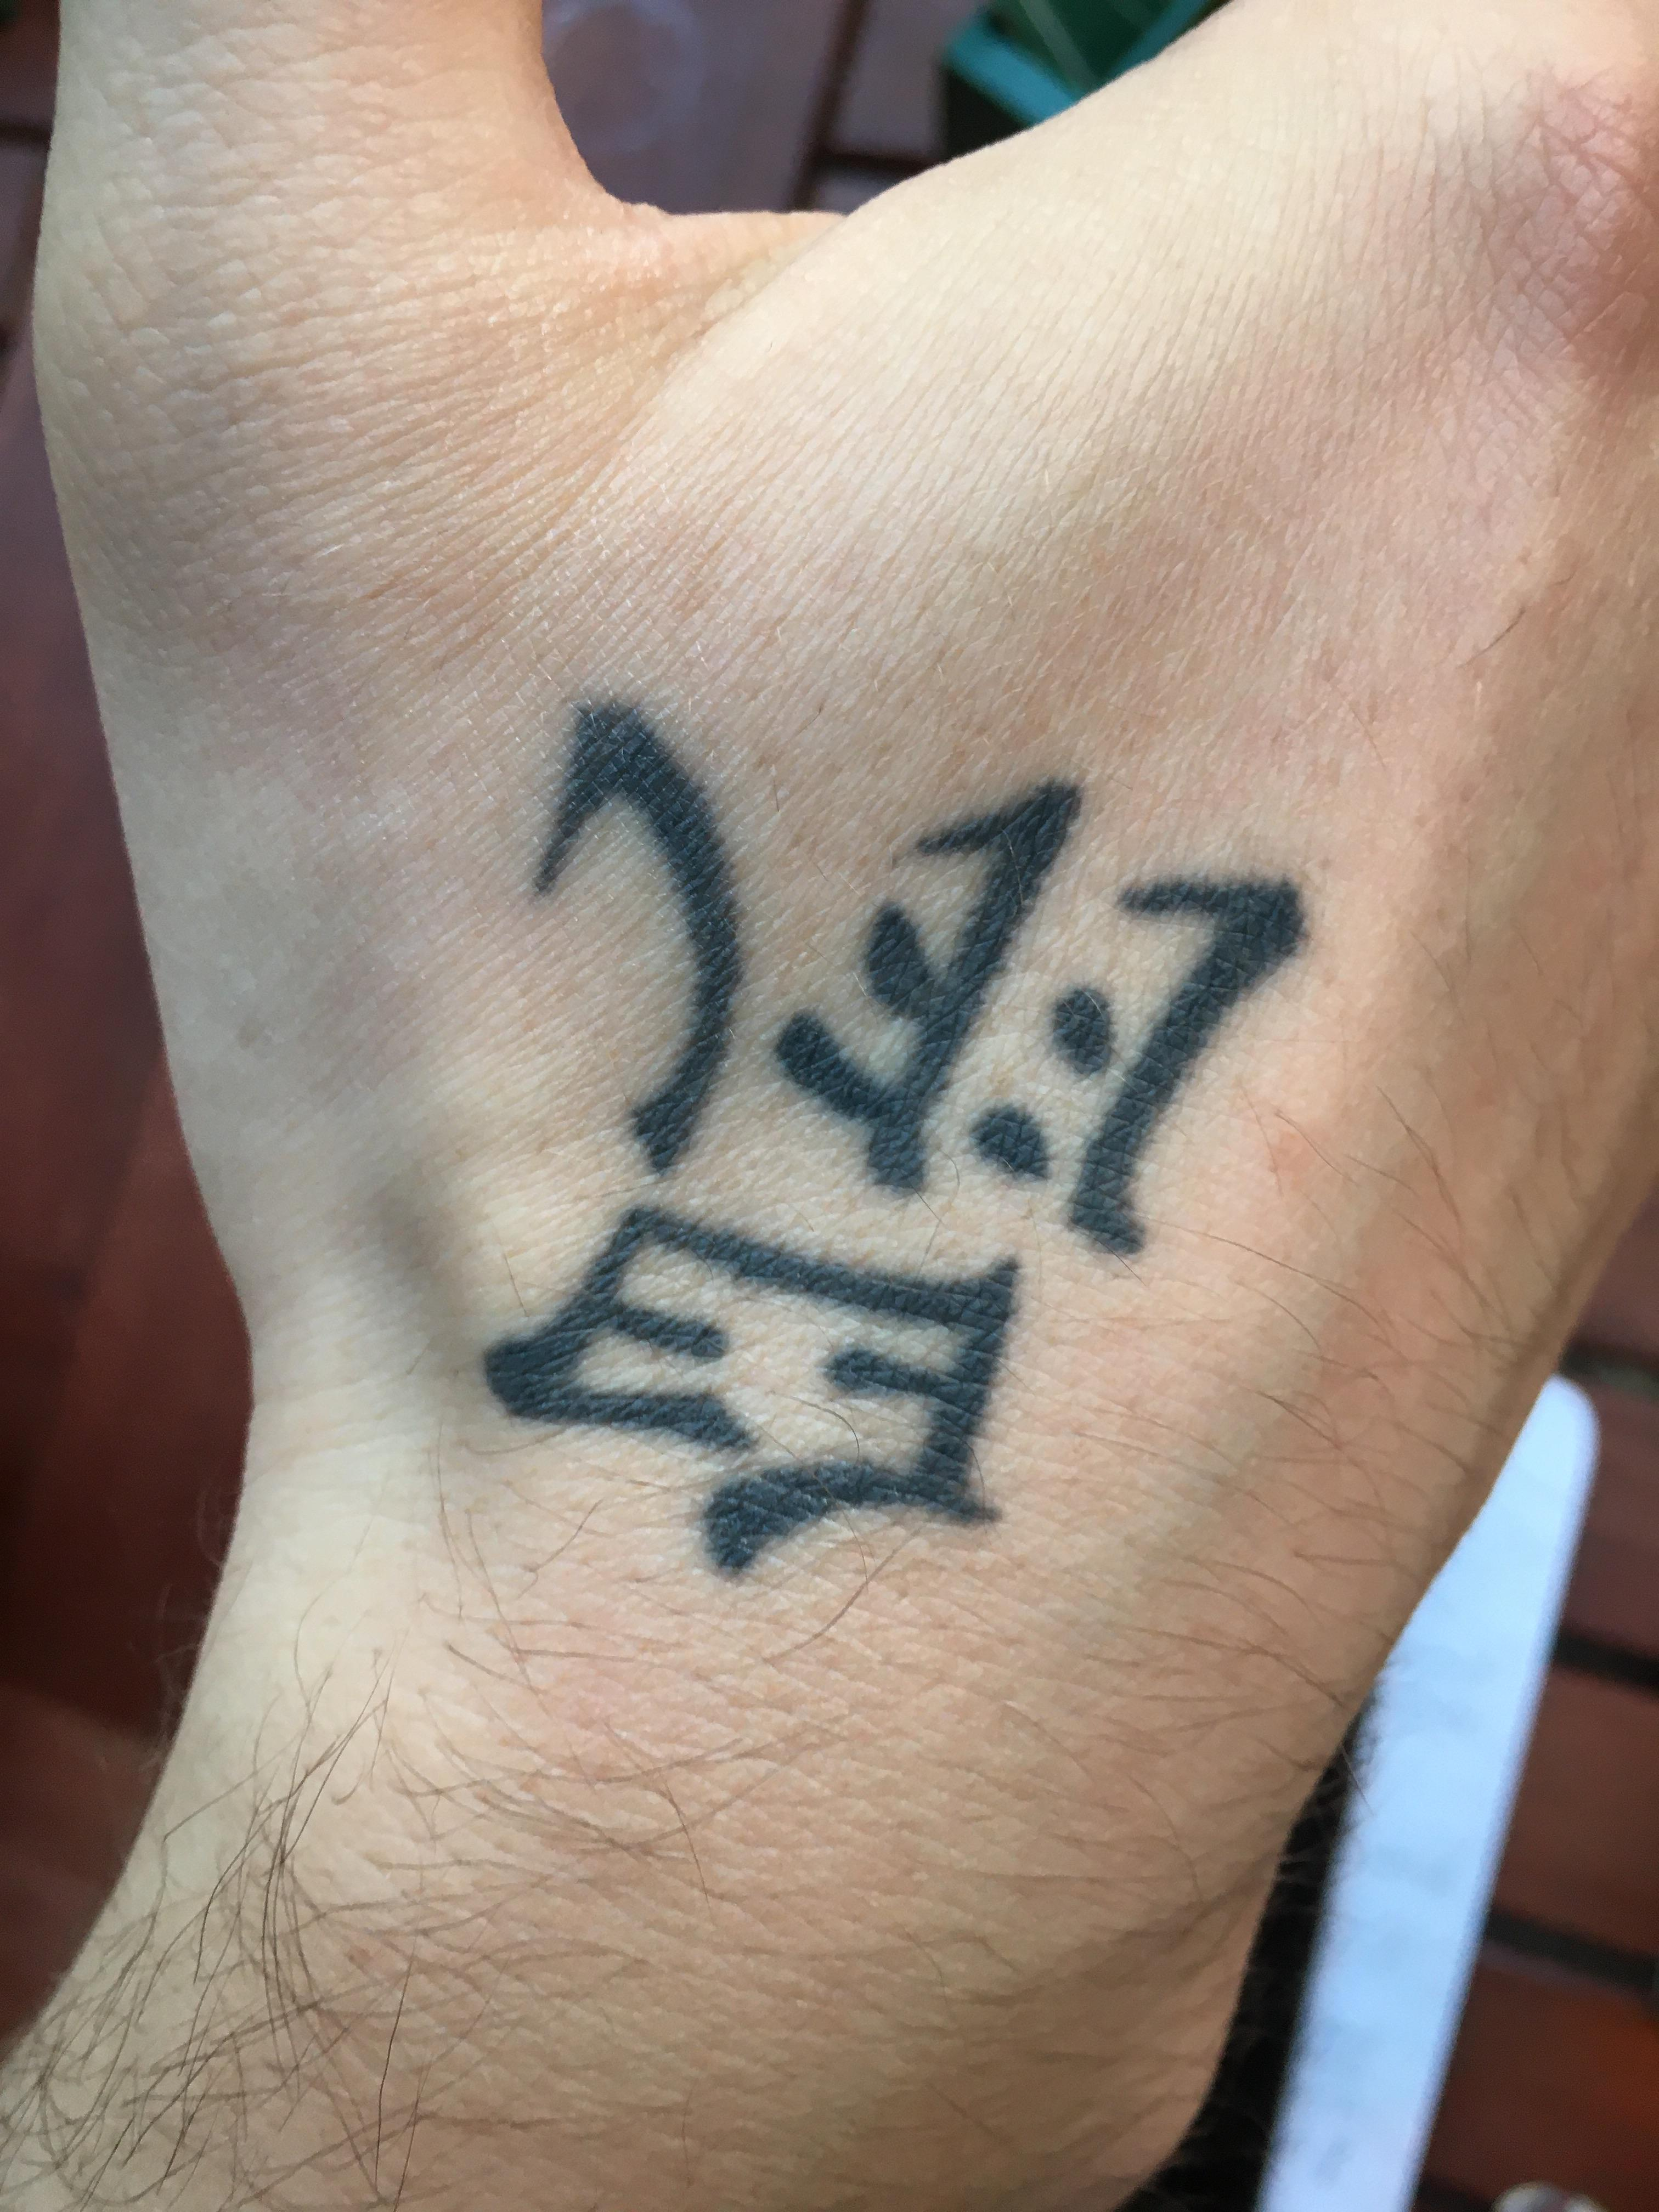 My Friend Wake Up With This Tattoo After A Really Huge